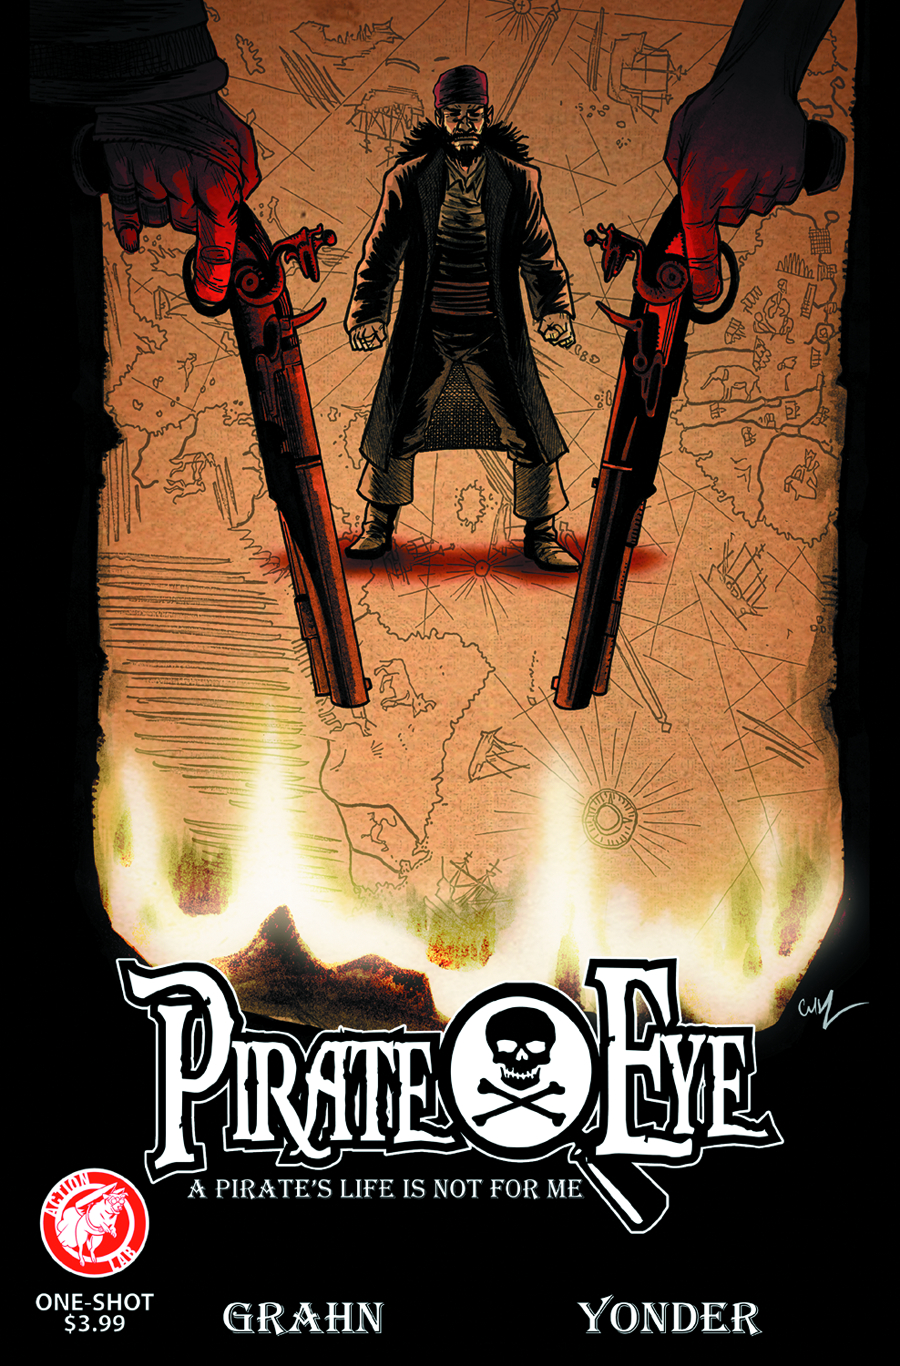 PIRATE EYE ONE SHOT PIRATES LIFE